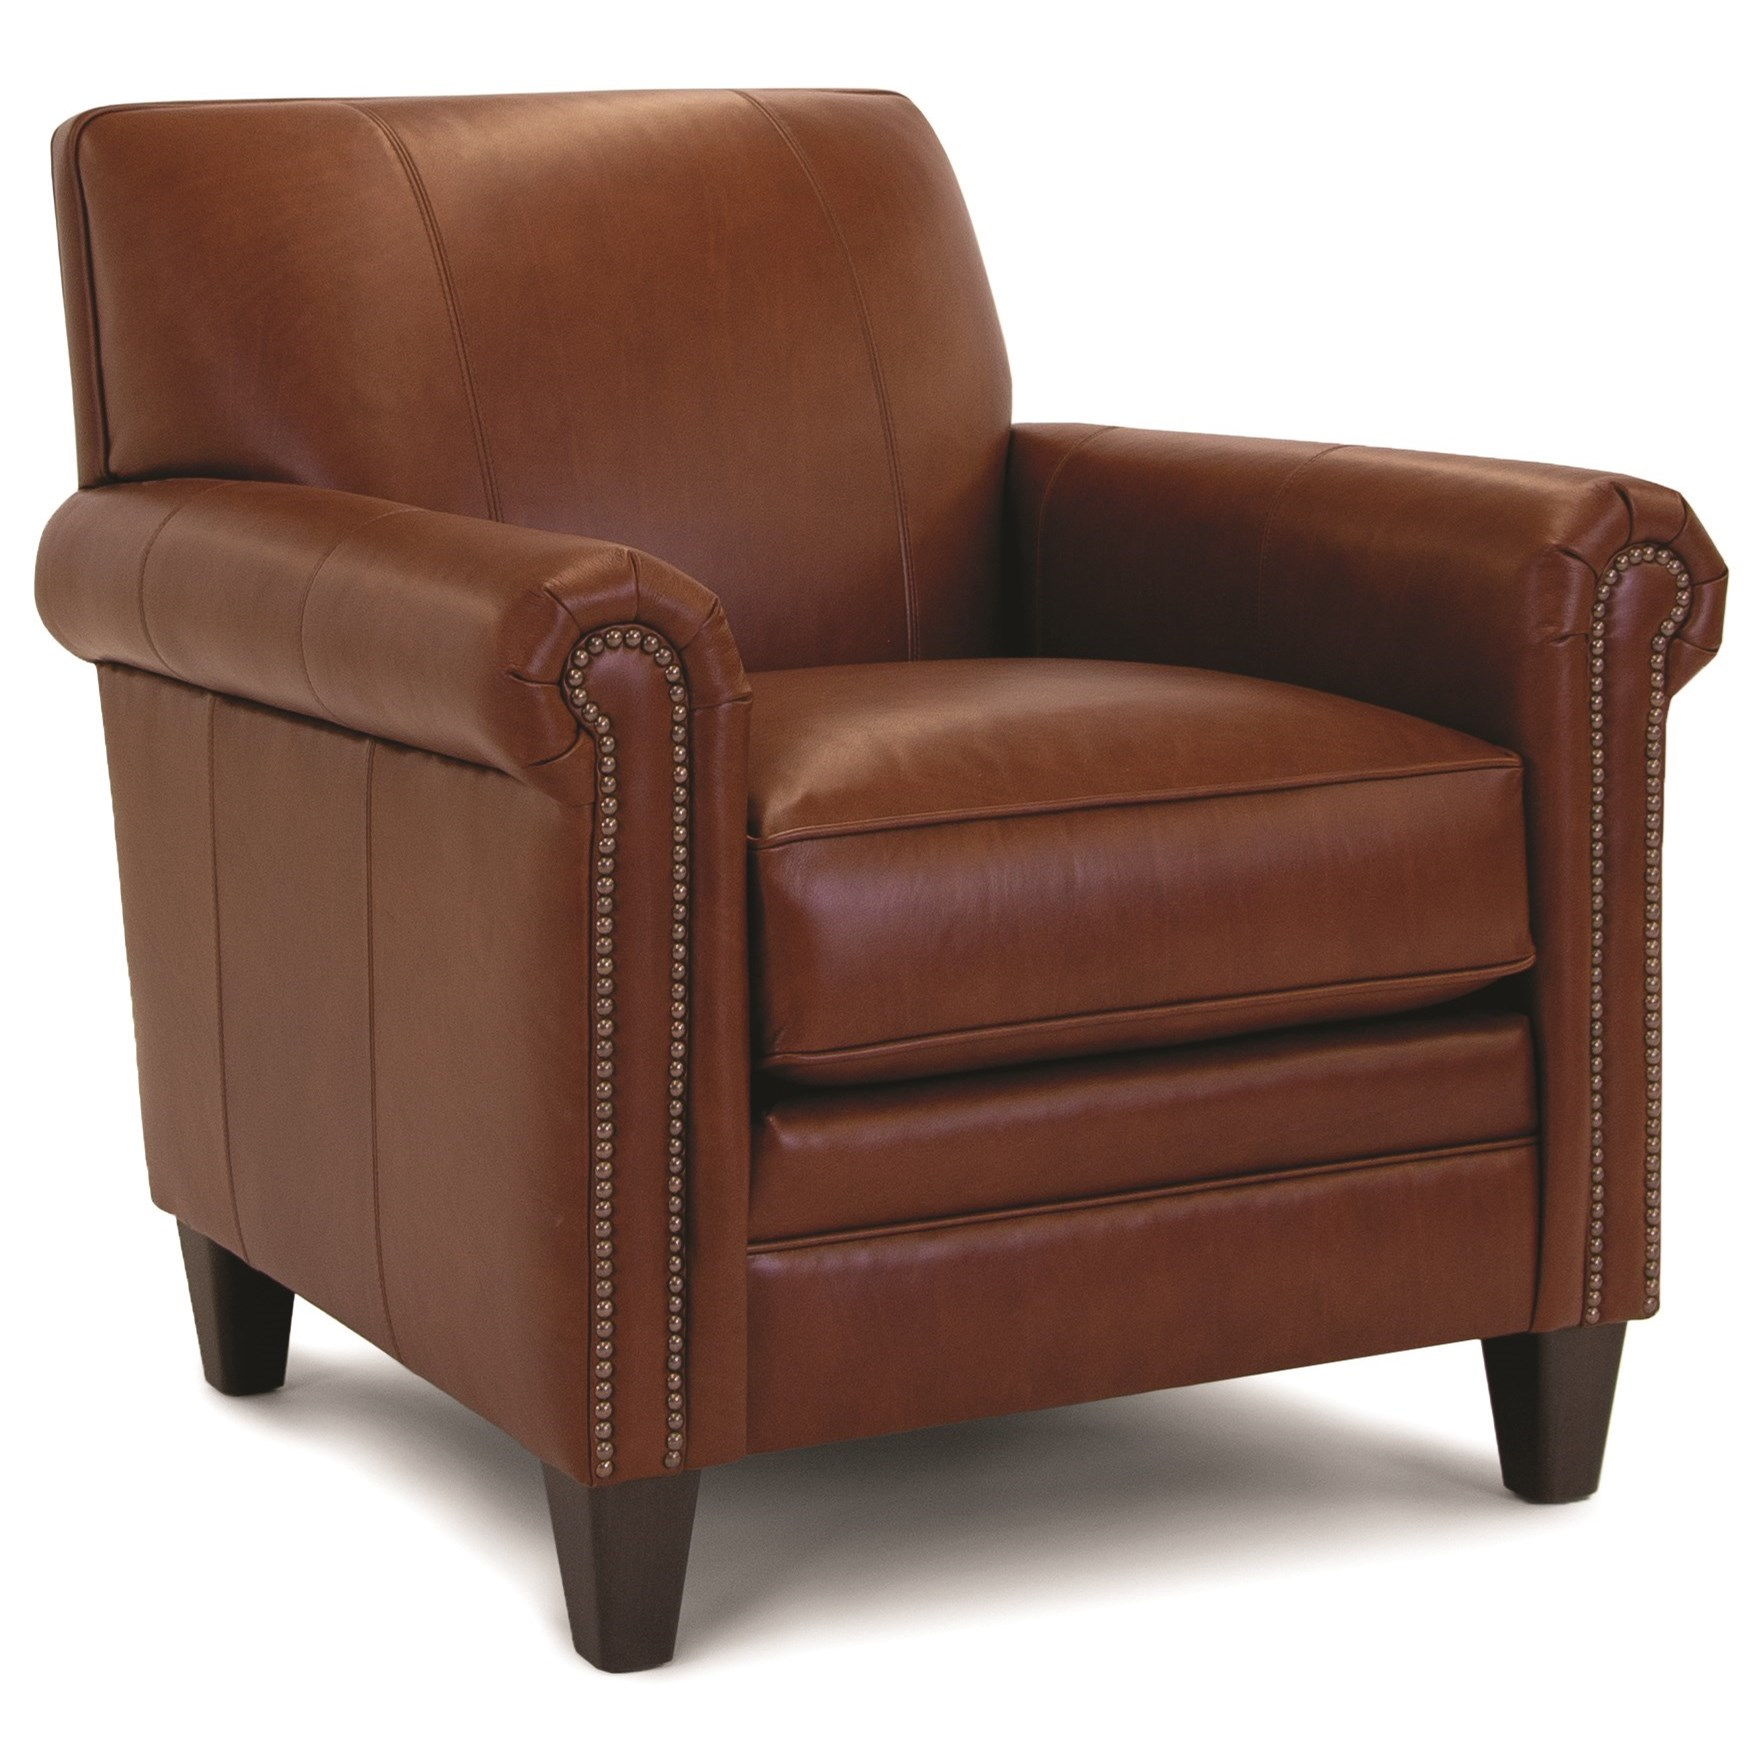 Build Your Own 3000 Series Customizable Chair by Smith Brothers at Story & Lee Furniture